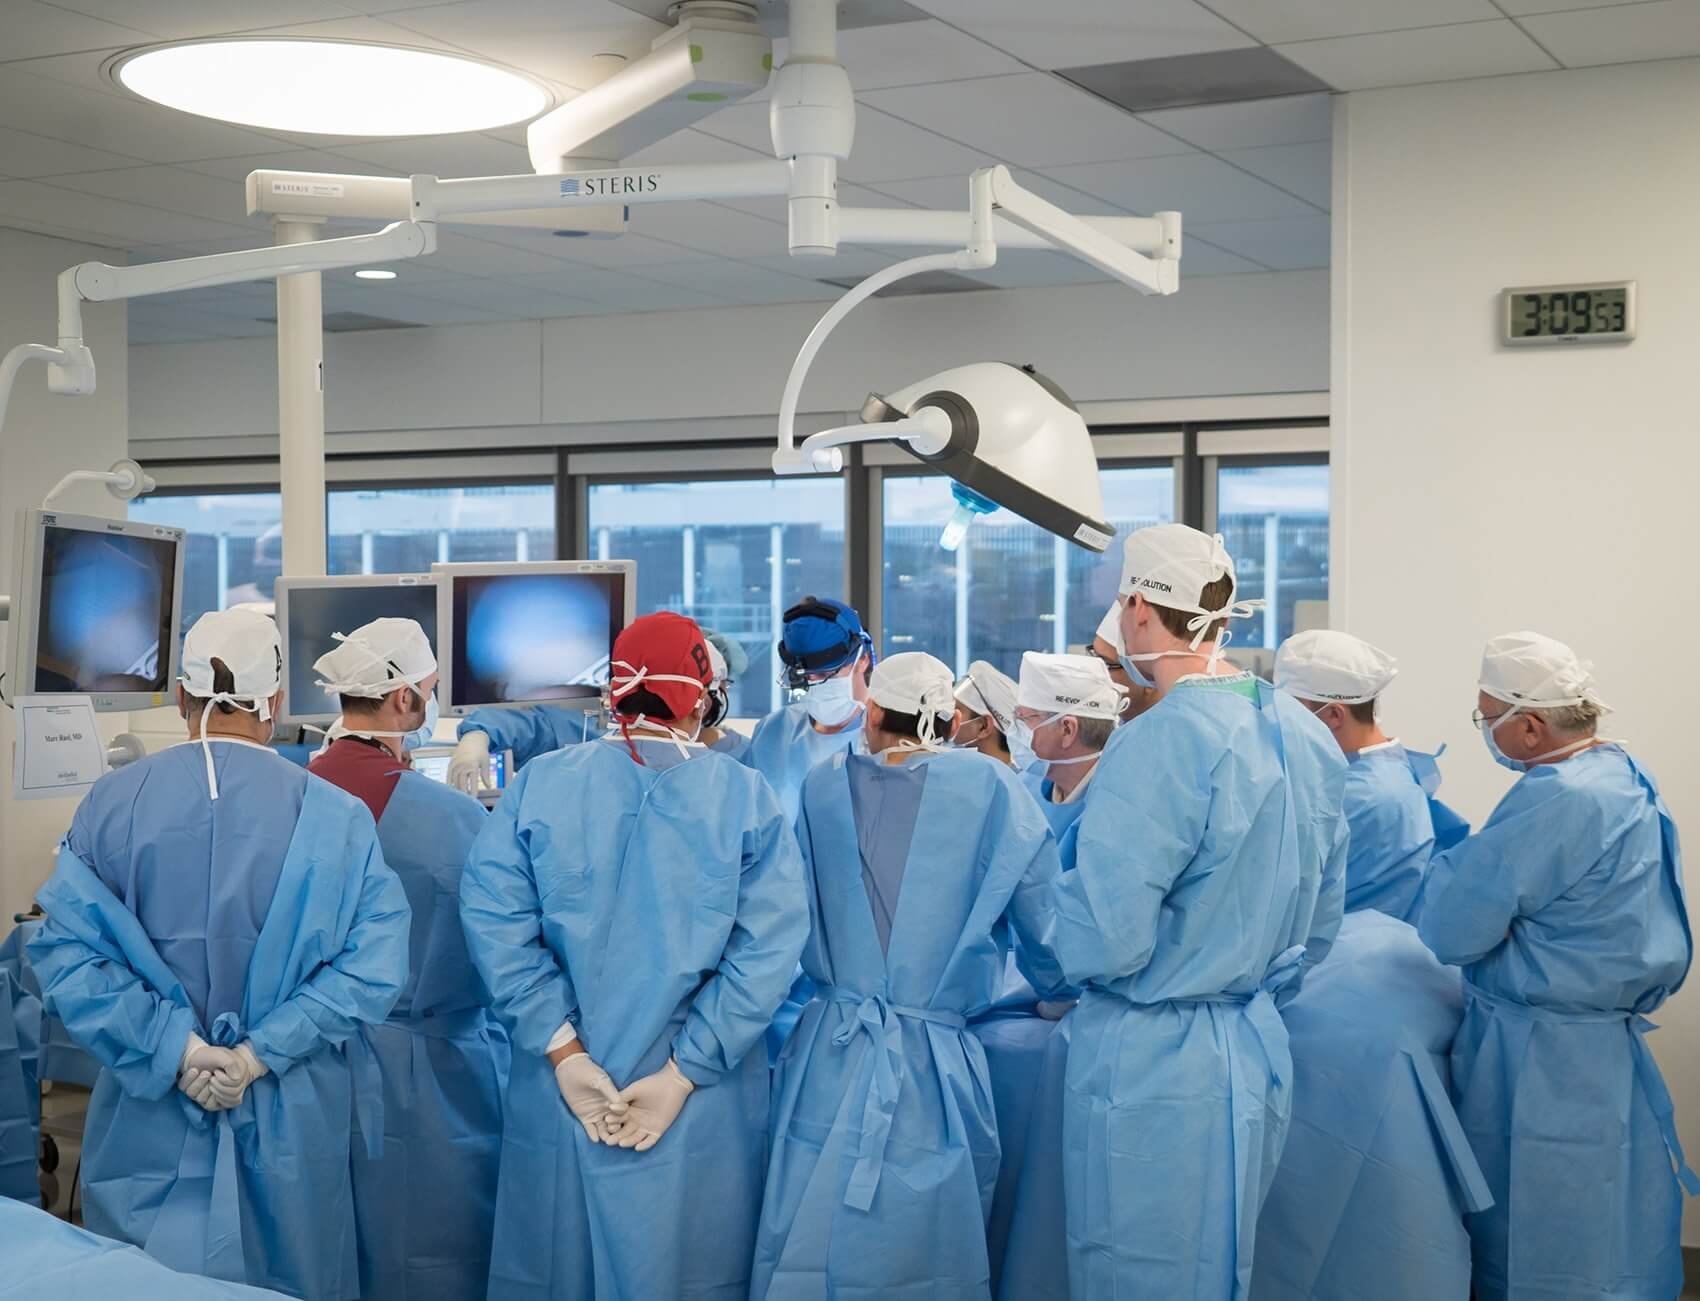 In the afternoon, attendees rotated through stations featuring distinct minimally invasive techniques, performing procedures under the guidance of expert faculty members.